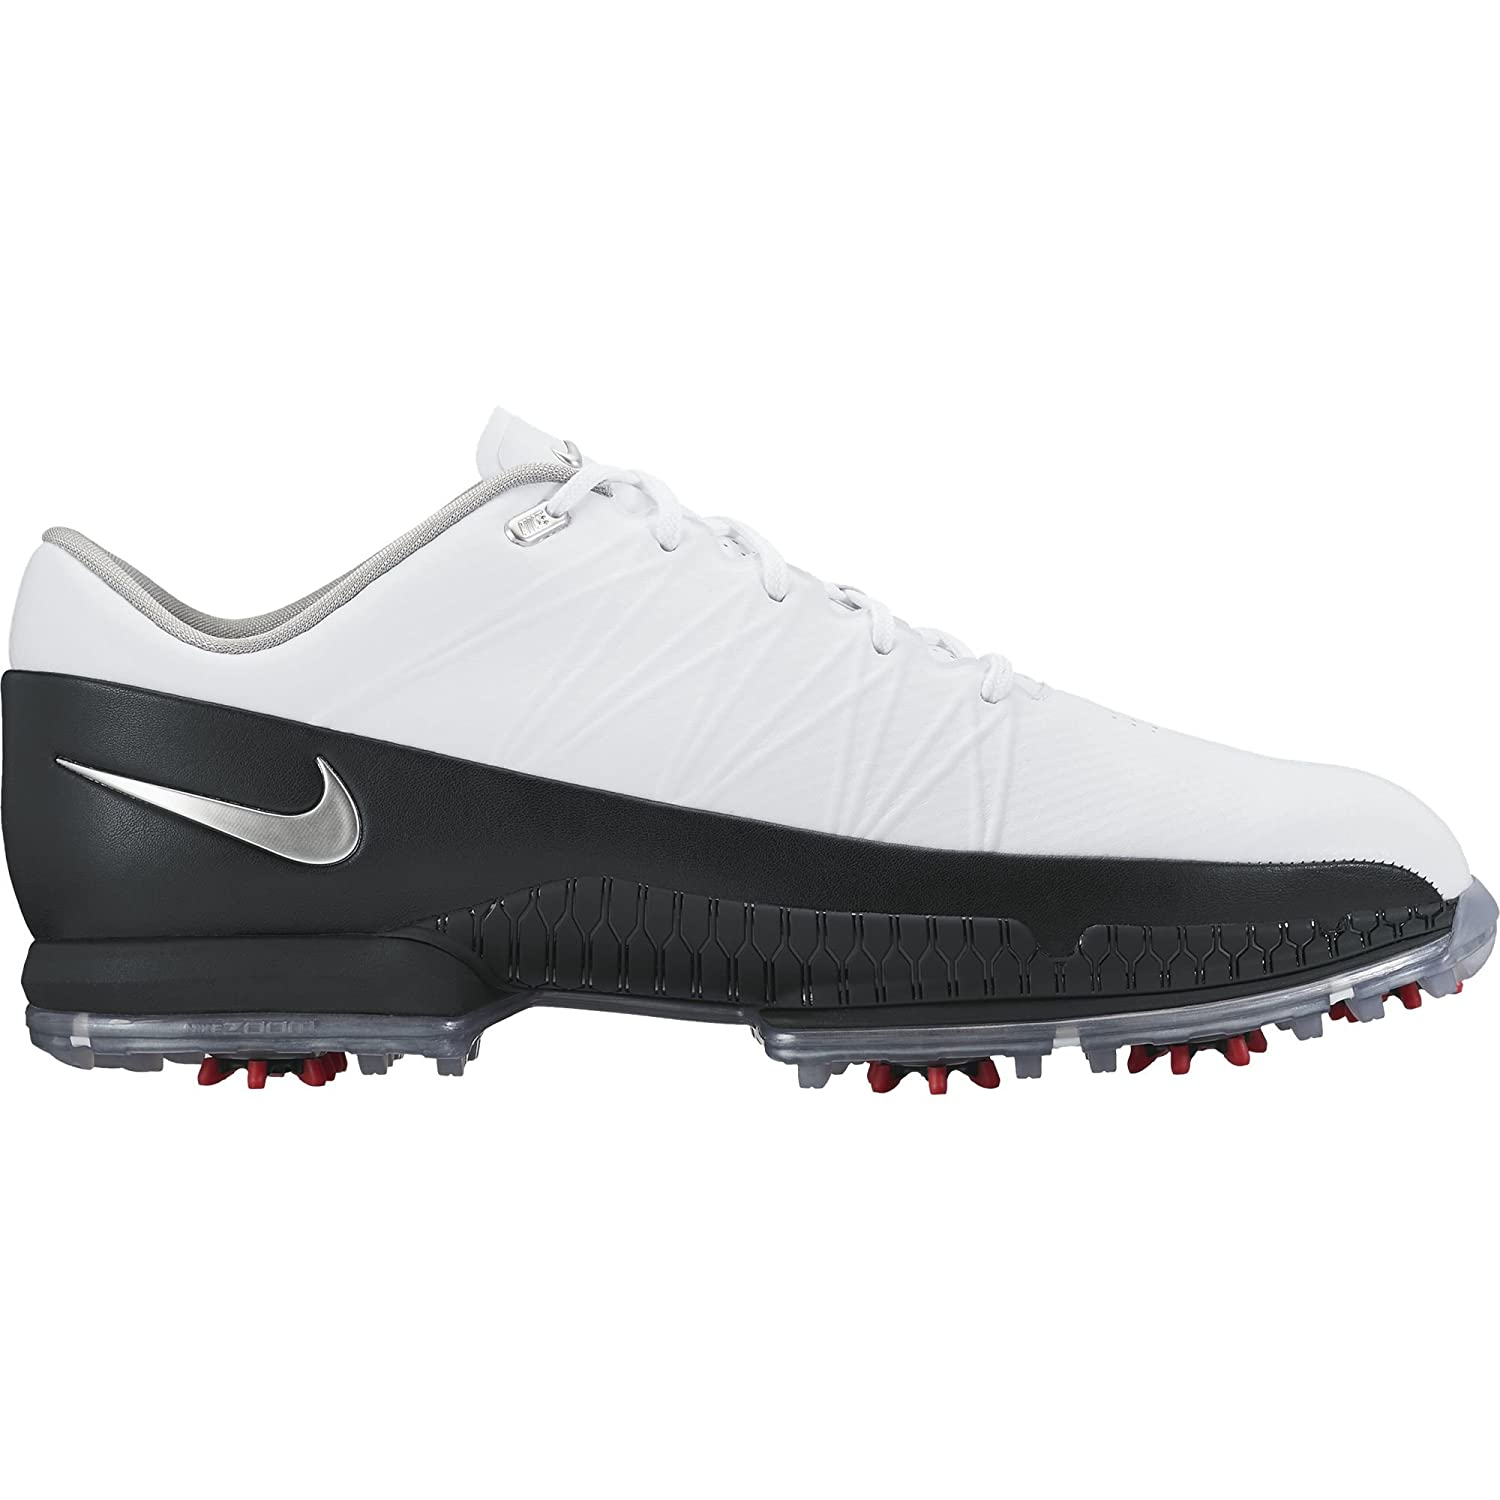 5b897647a7e09 cheap 2016 Nike AIR ZOOM ATTACK Golf Shoes Medium -White Silver Black-